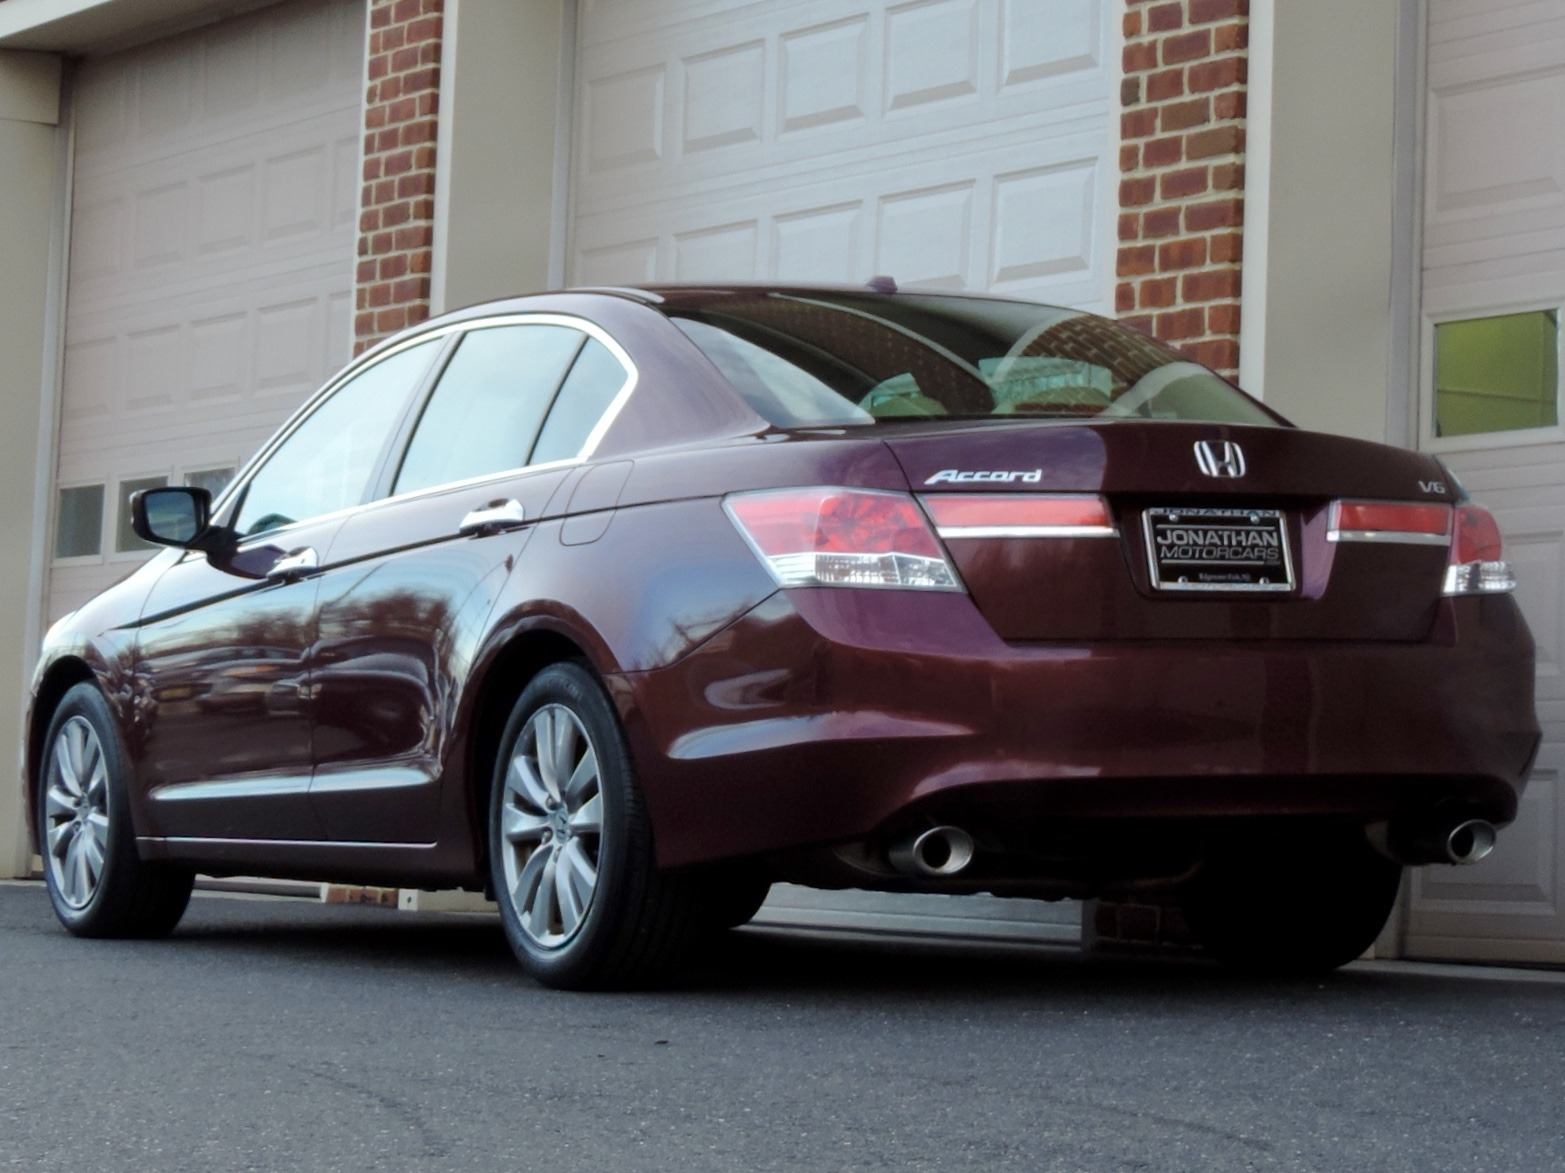 2012 Honda Accord EX-L V6 Stock # 021444 for sale near Edgewater Park, NJ | NJ Honda Dealer